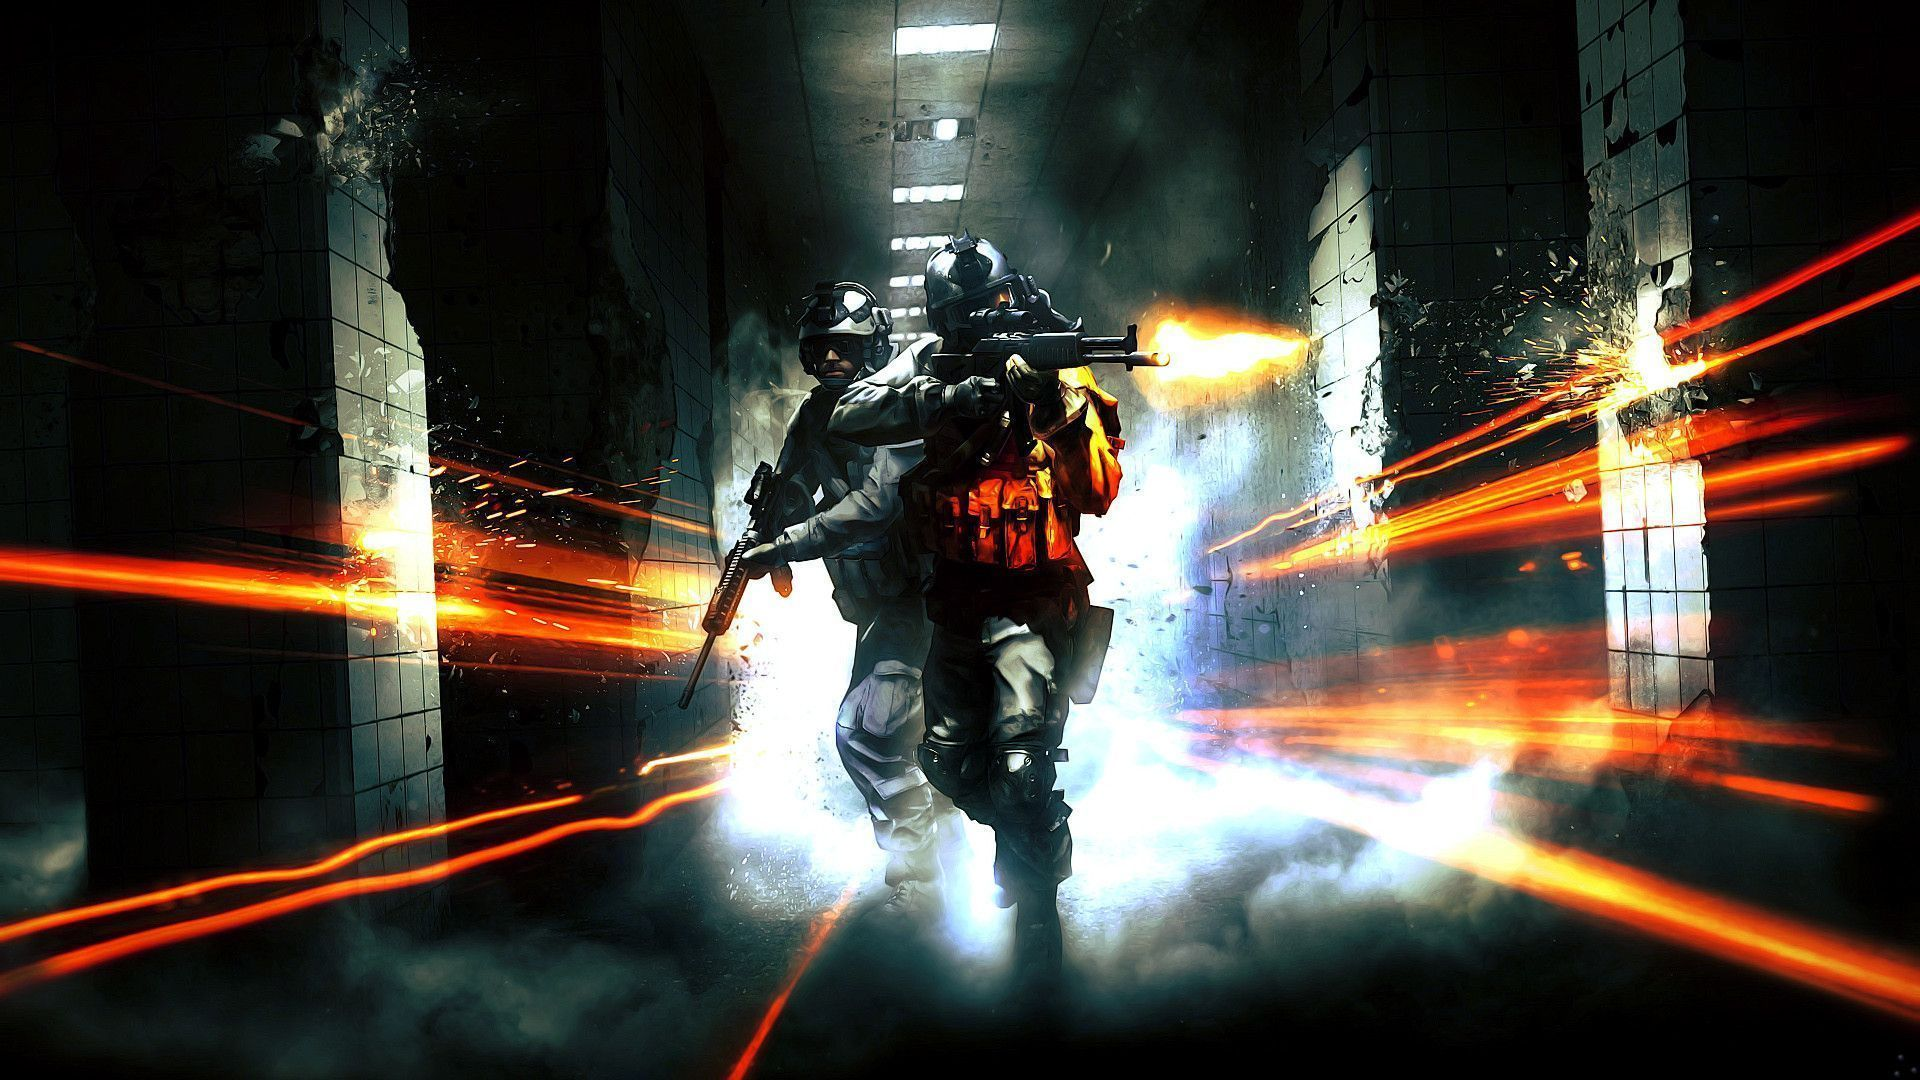 Battlefield 3 Wallpapers 1080p Wallpaper Cave Images Wallpapers